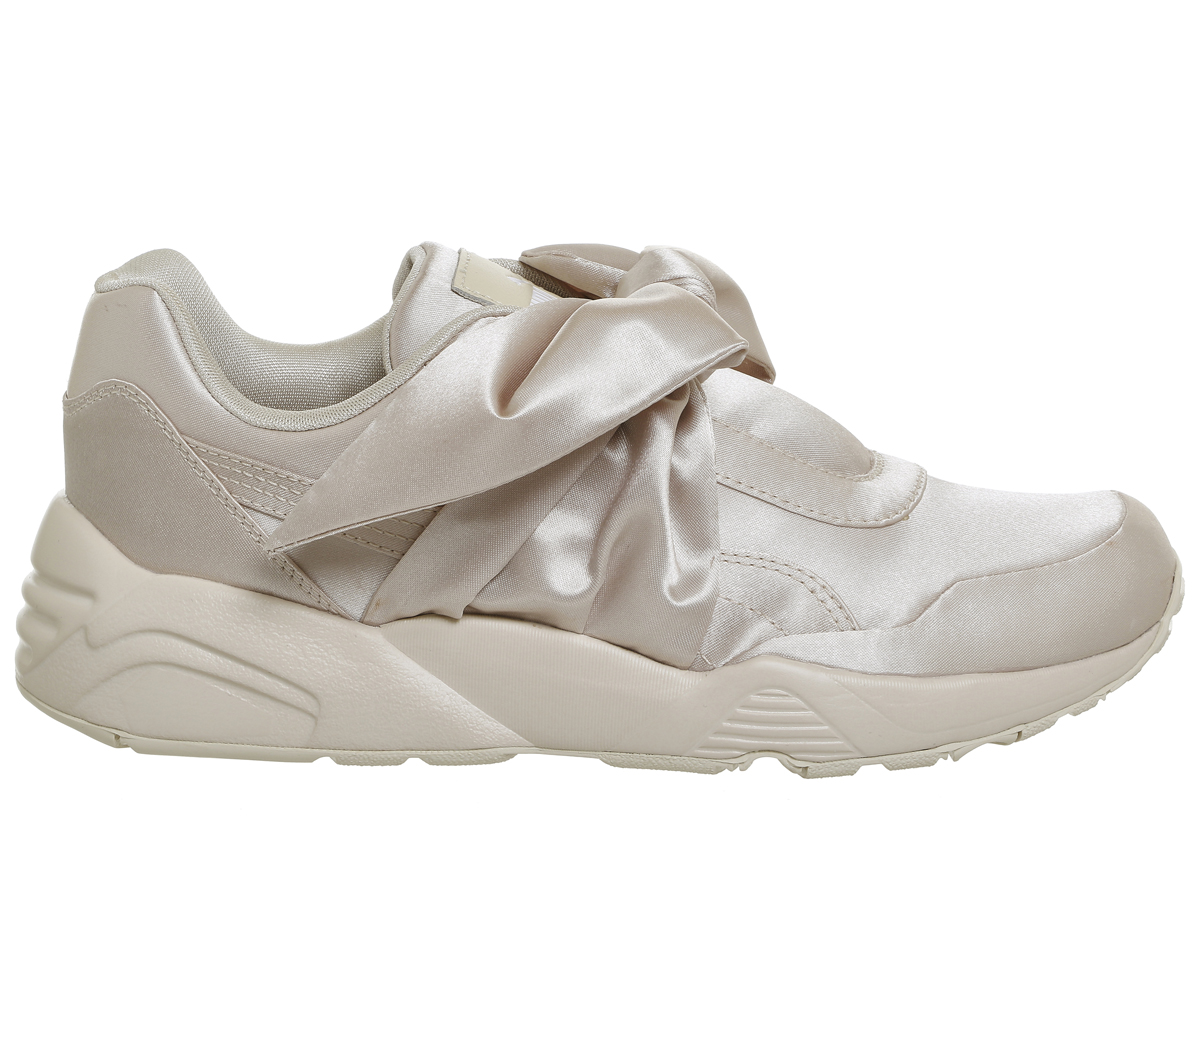 Sentinel Womens Puma R698 Trainers CREAM SATIN Trainers Shoes